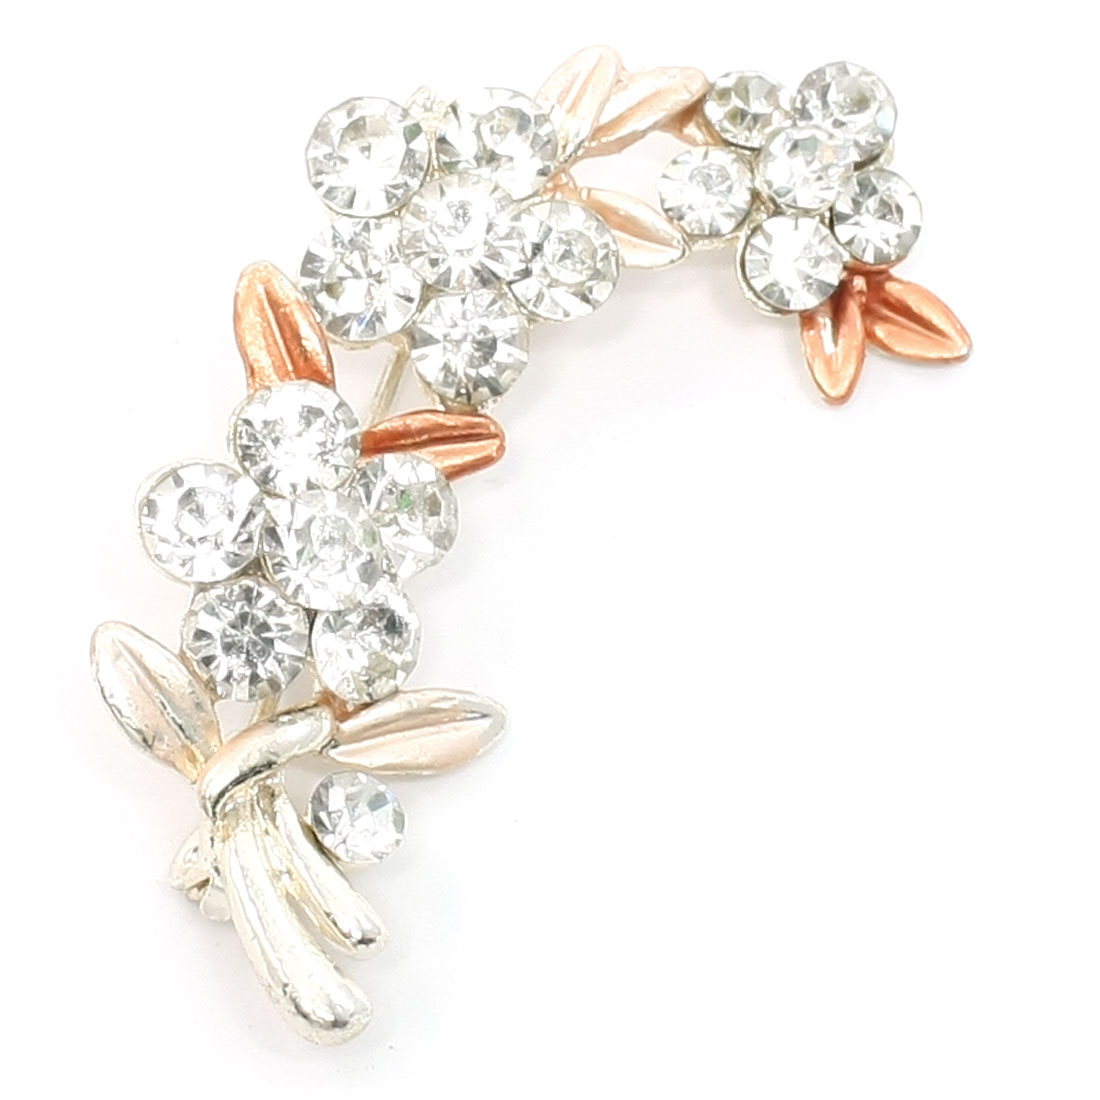 Woman Bling Pale Apricot Faux Rhinestone Flower Safety Pin Brooch